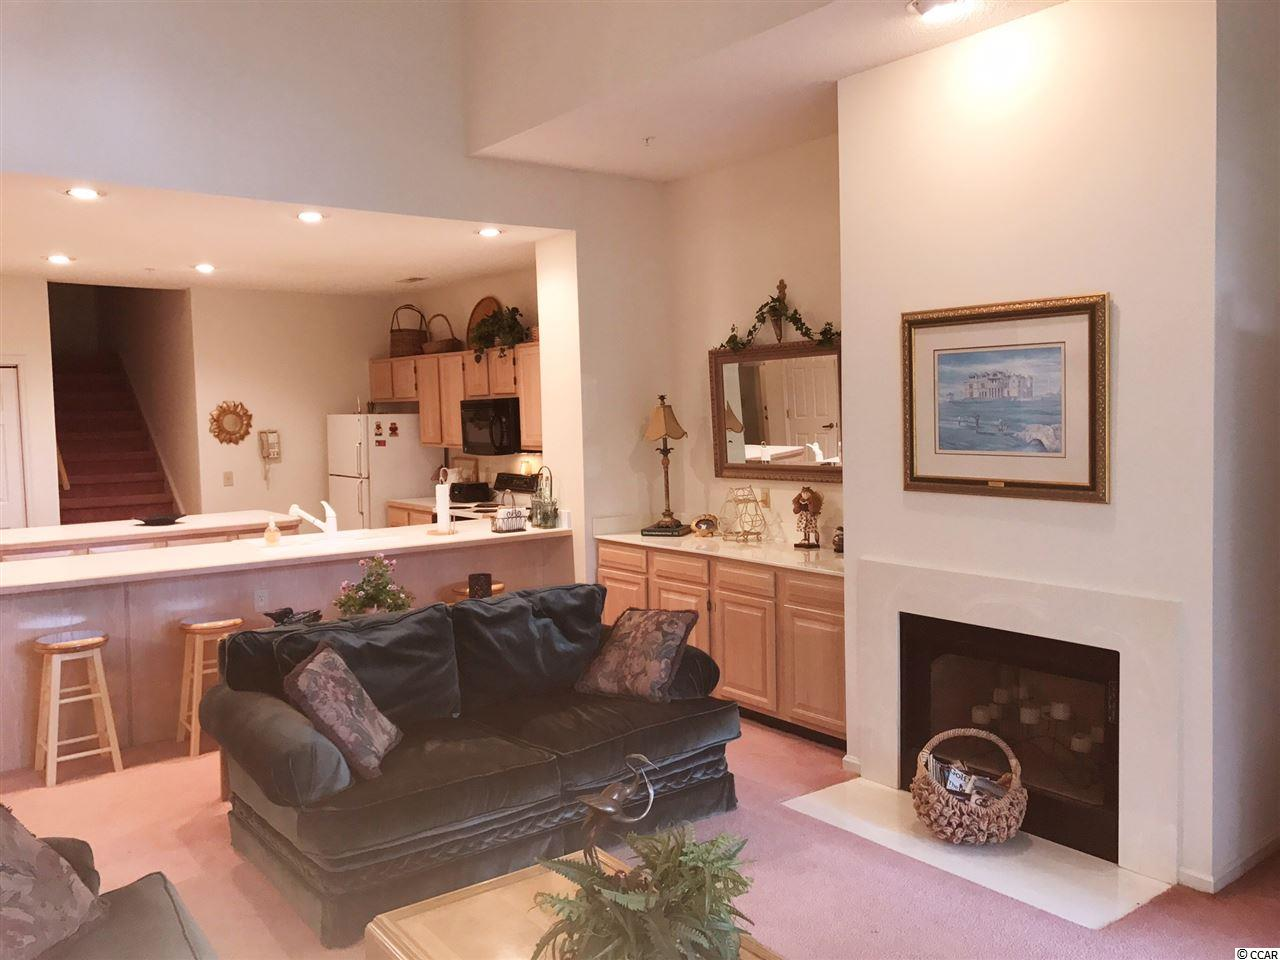 TEAL LAKE VLG condo at 1221 Tidewater Drive for sale. 1711249